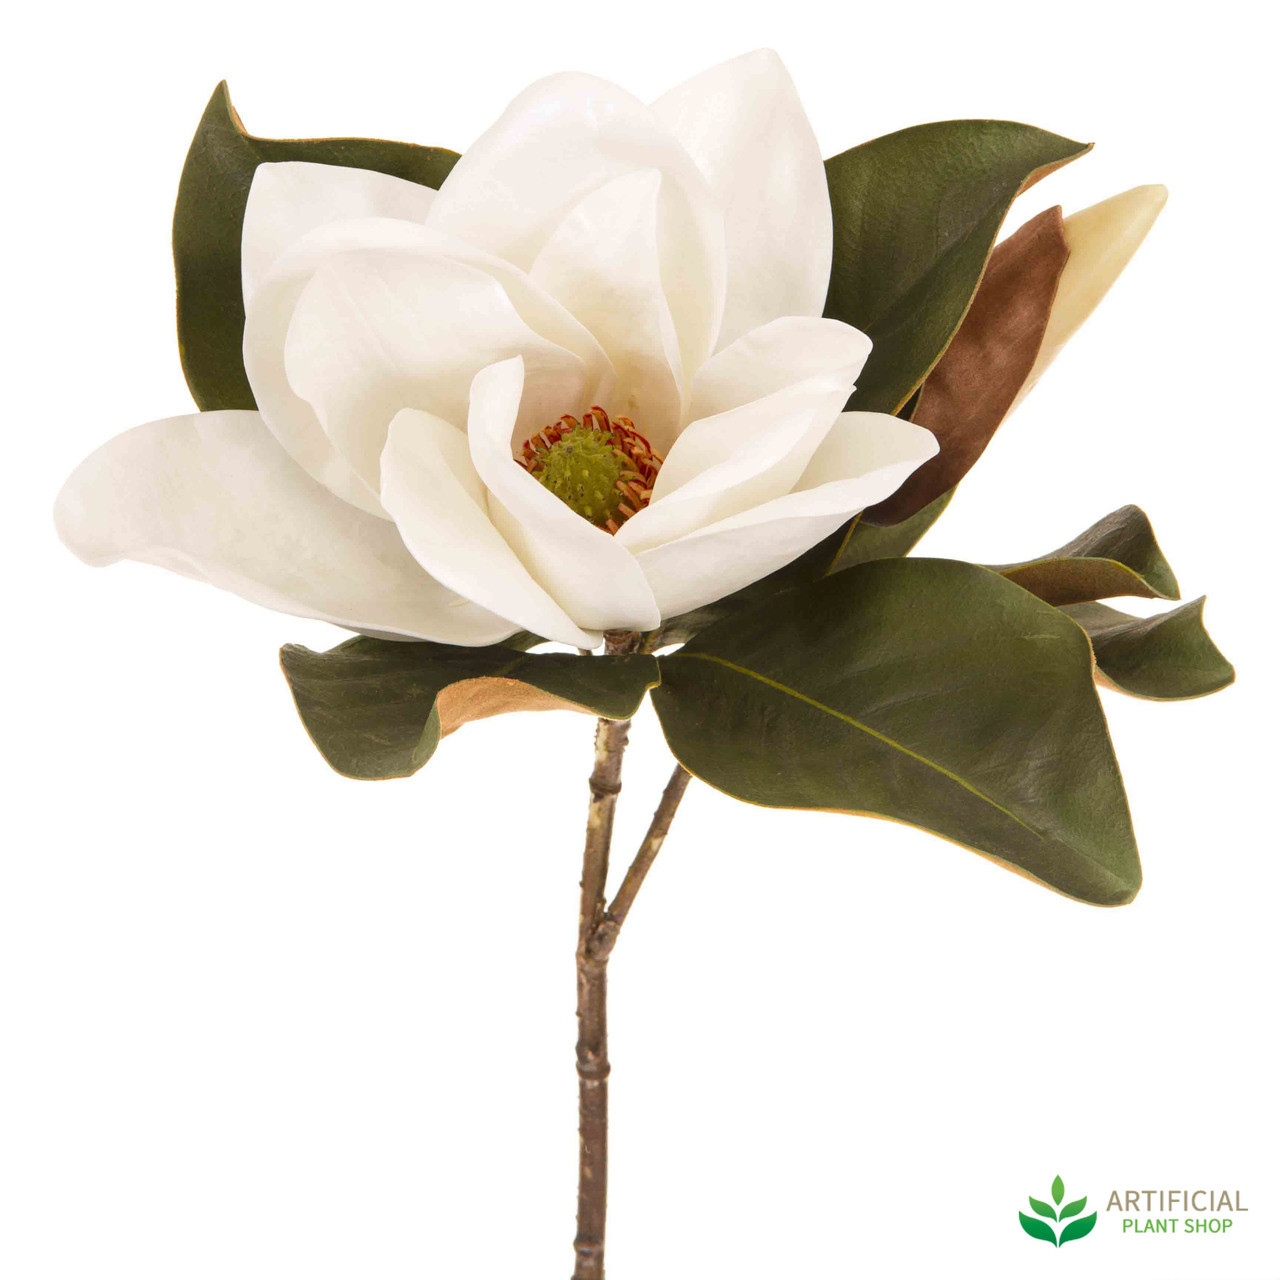 White magnolia flower 72cm white magnolia flower 72cm pack of 6 mightylinksfo Images